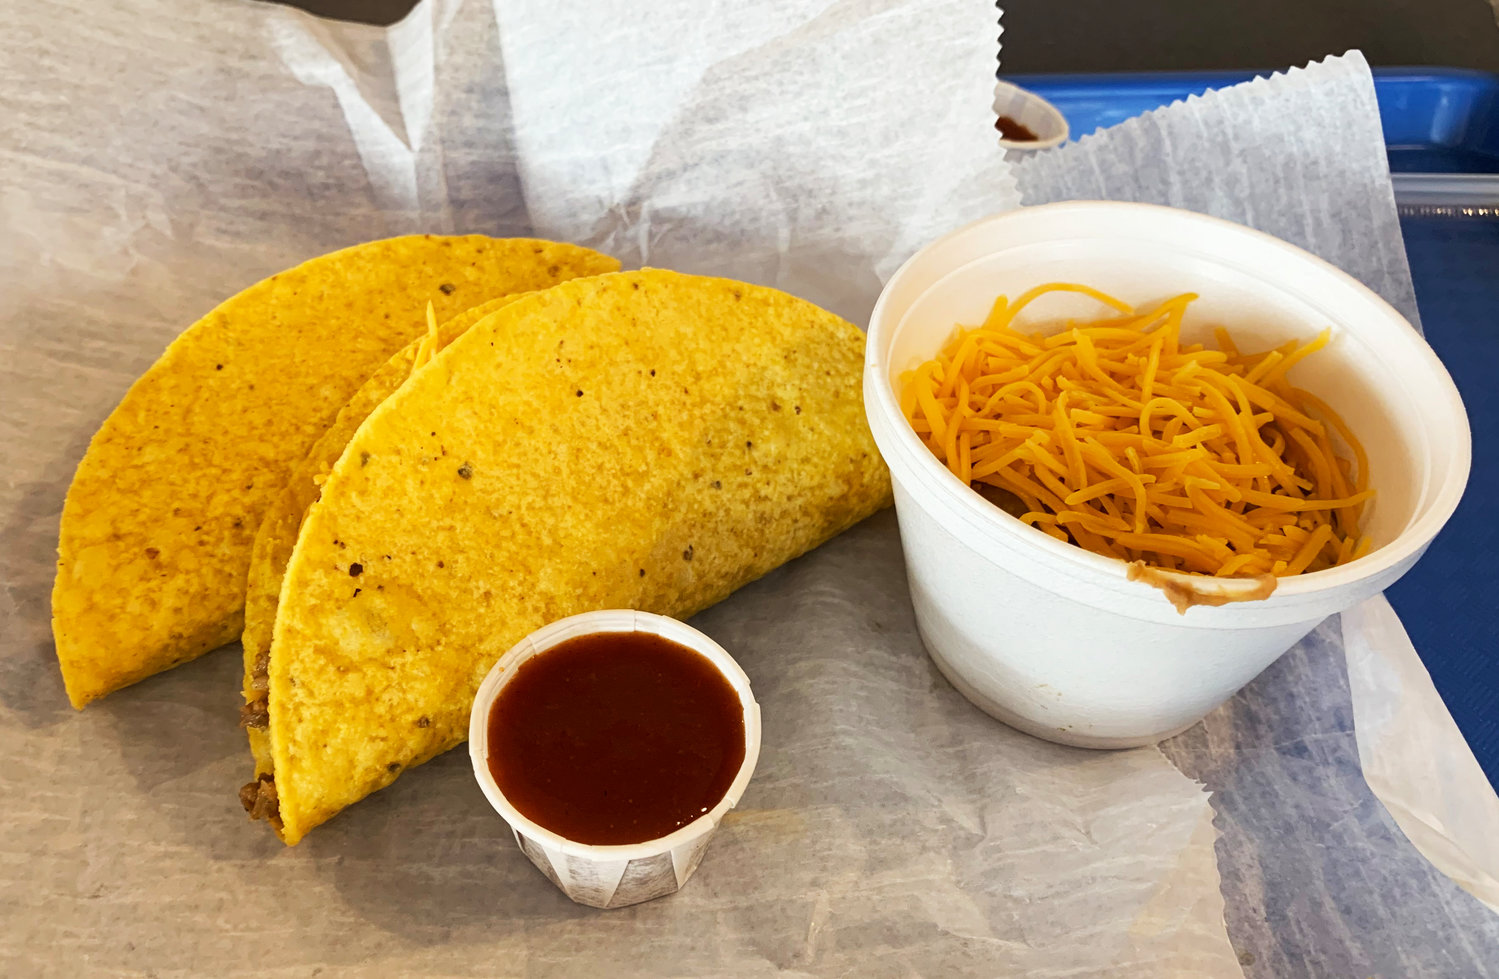 Two hard shell tacos with a side of beans from Mr. Taco.